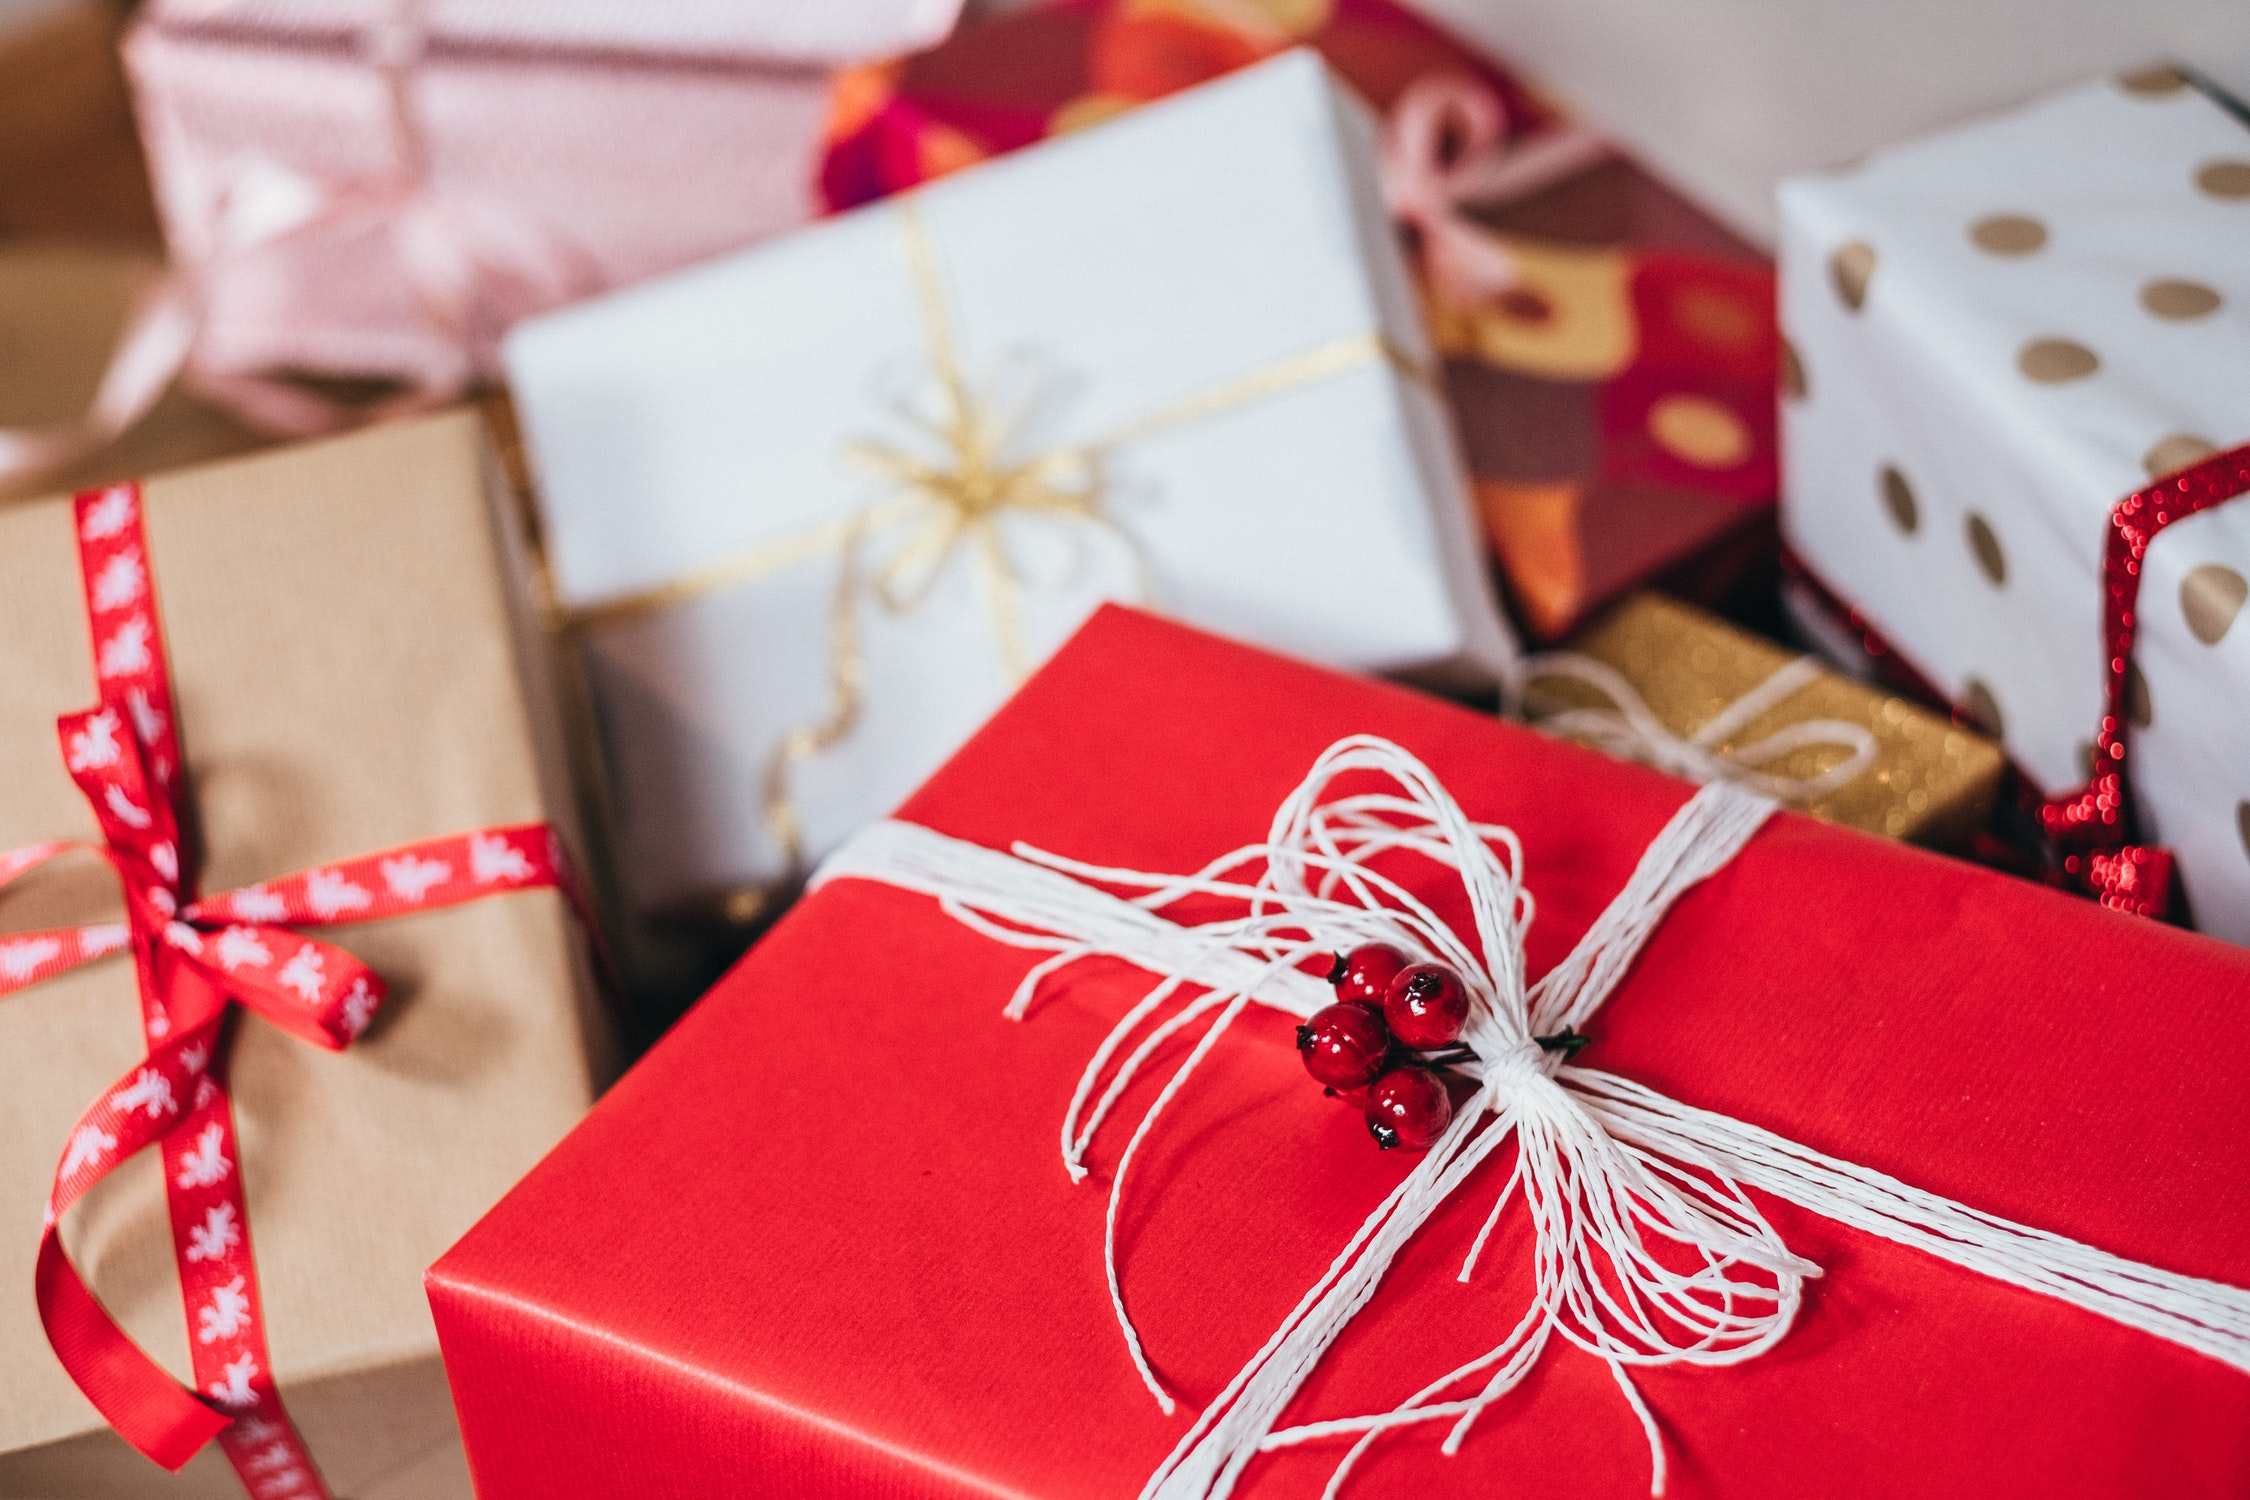 5 ideas to ace your marketing this Christmas